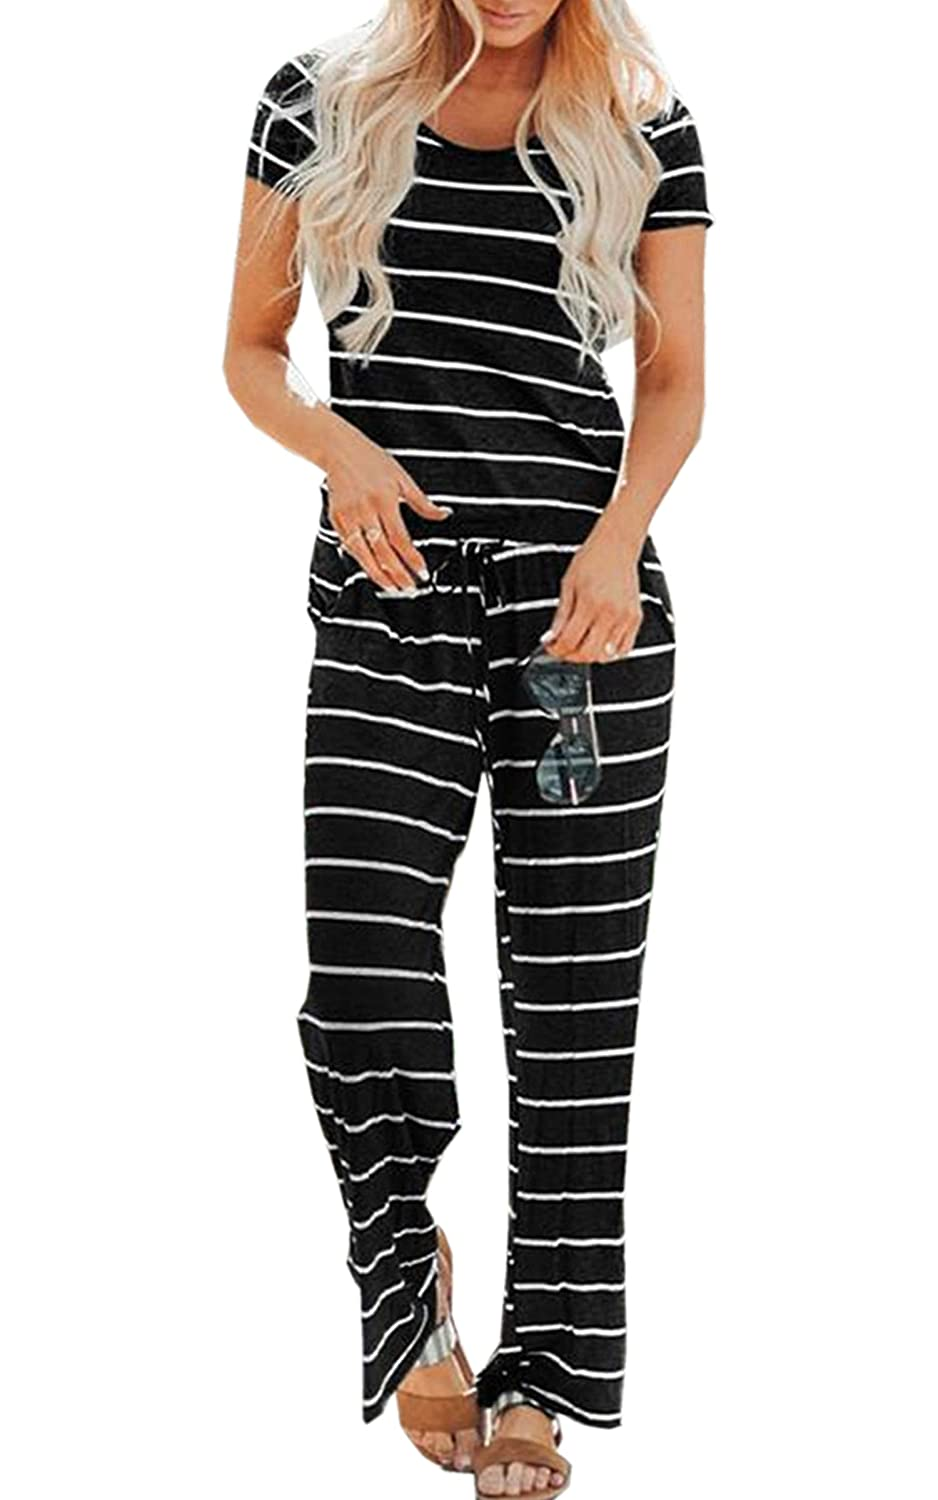 18410566f57 Casual Jumpsuits With Sleeves - Gomes Weine AG